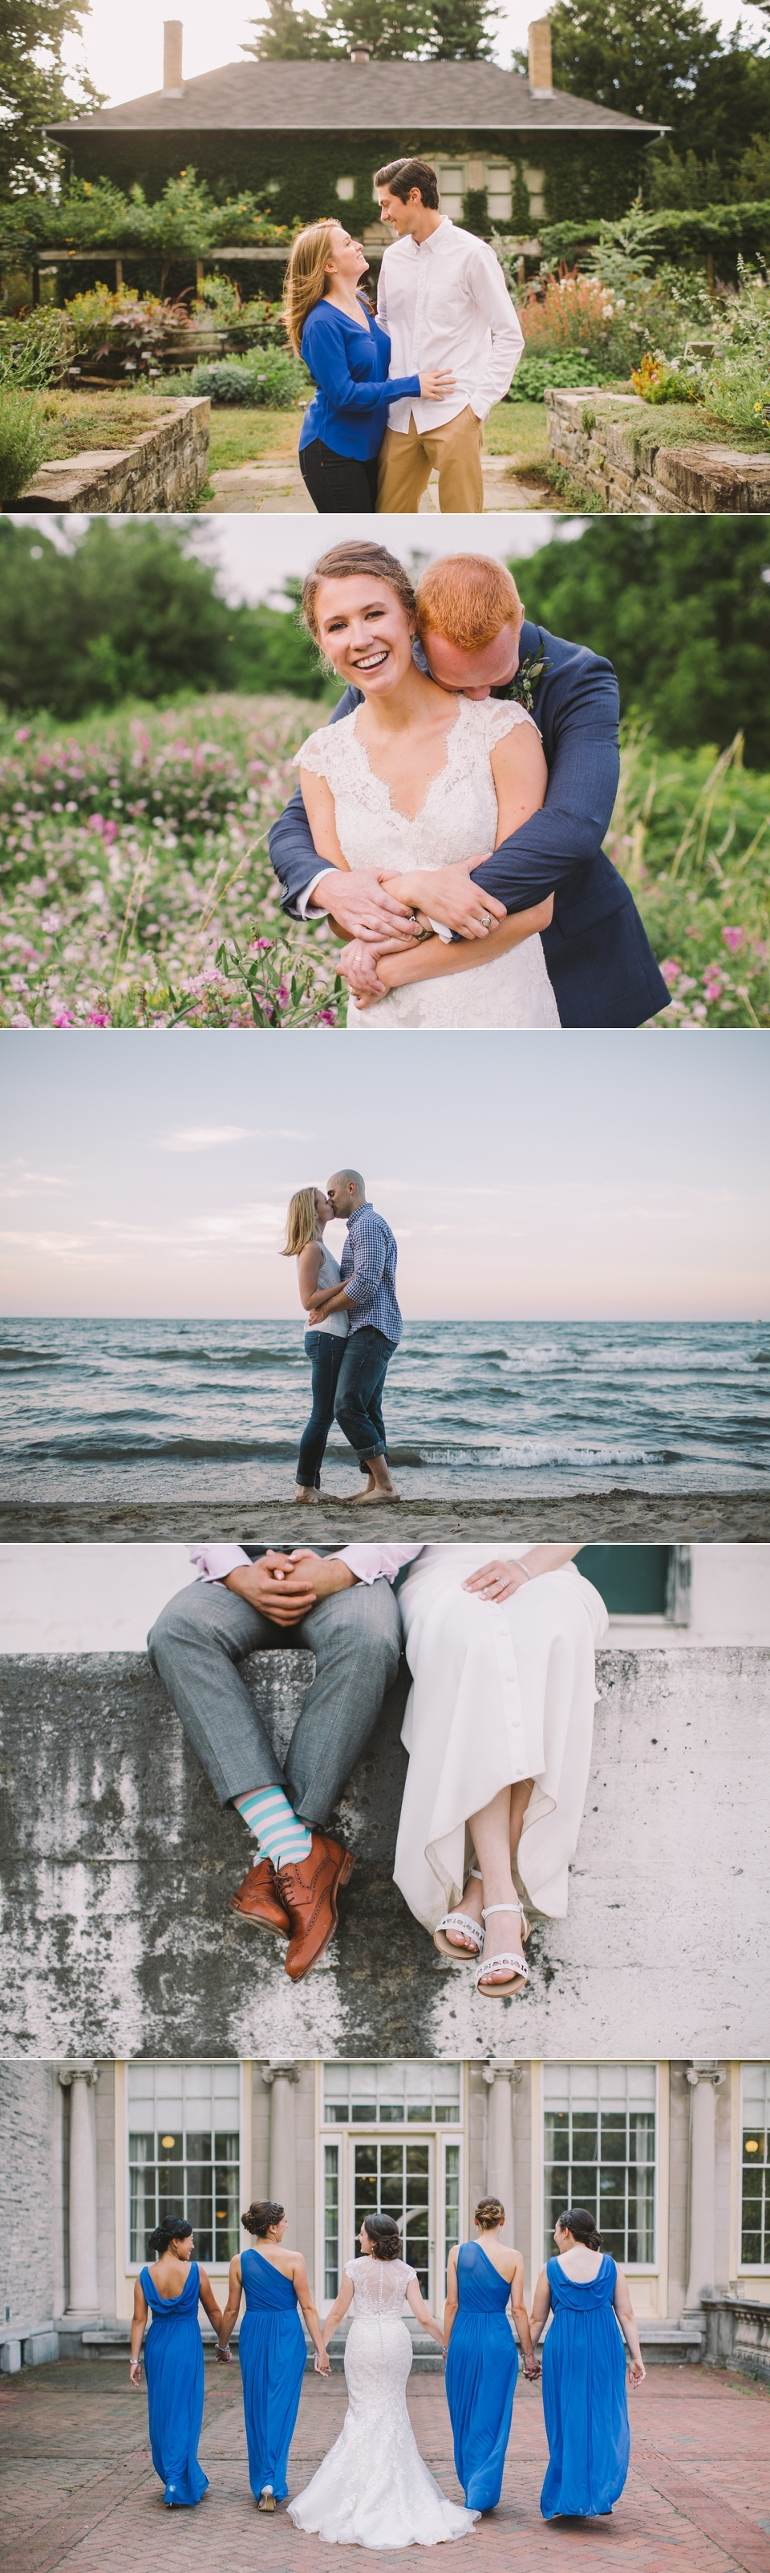 rochester-ny-wedding-photographers-best-of-2015_007